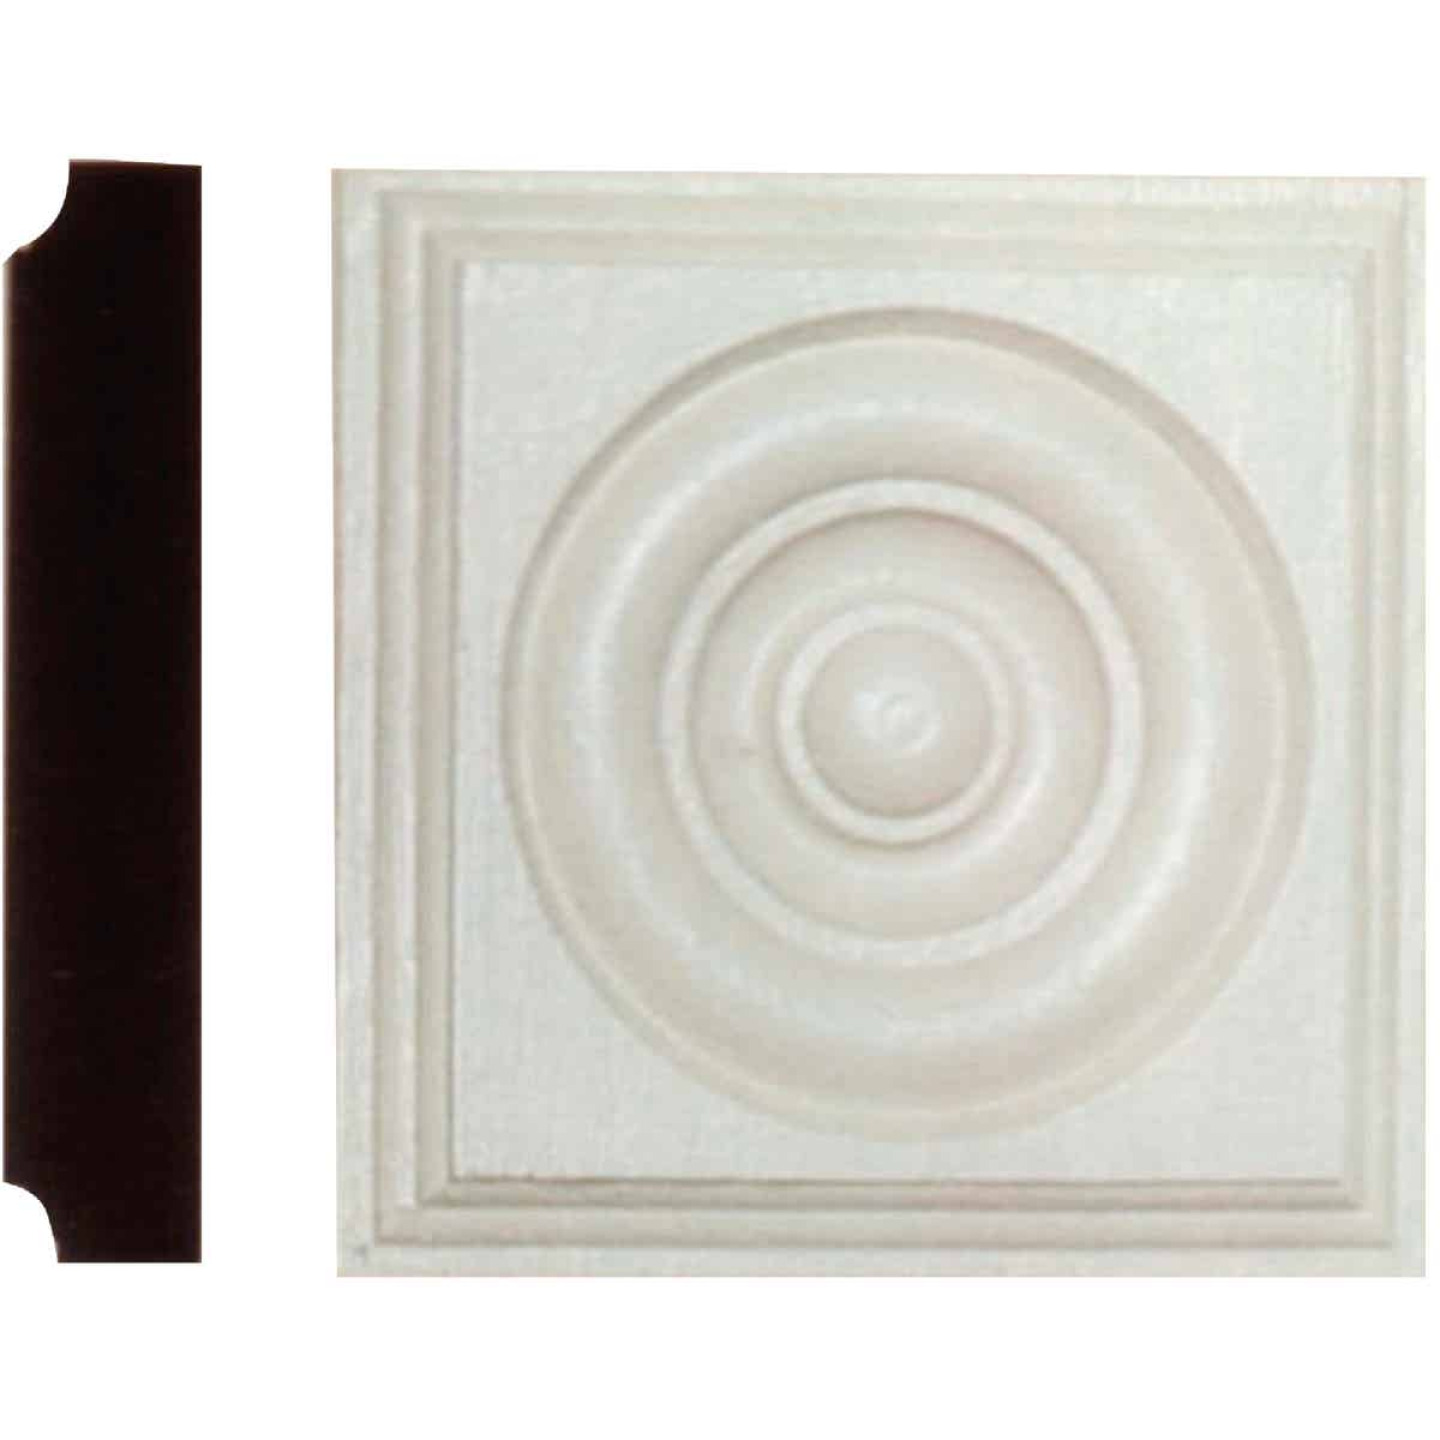 House of Fara 1-1/8 In. x 5-1/2 In. Primed MDF Rosette Image 1